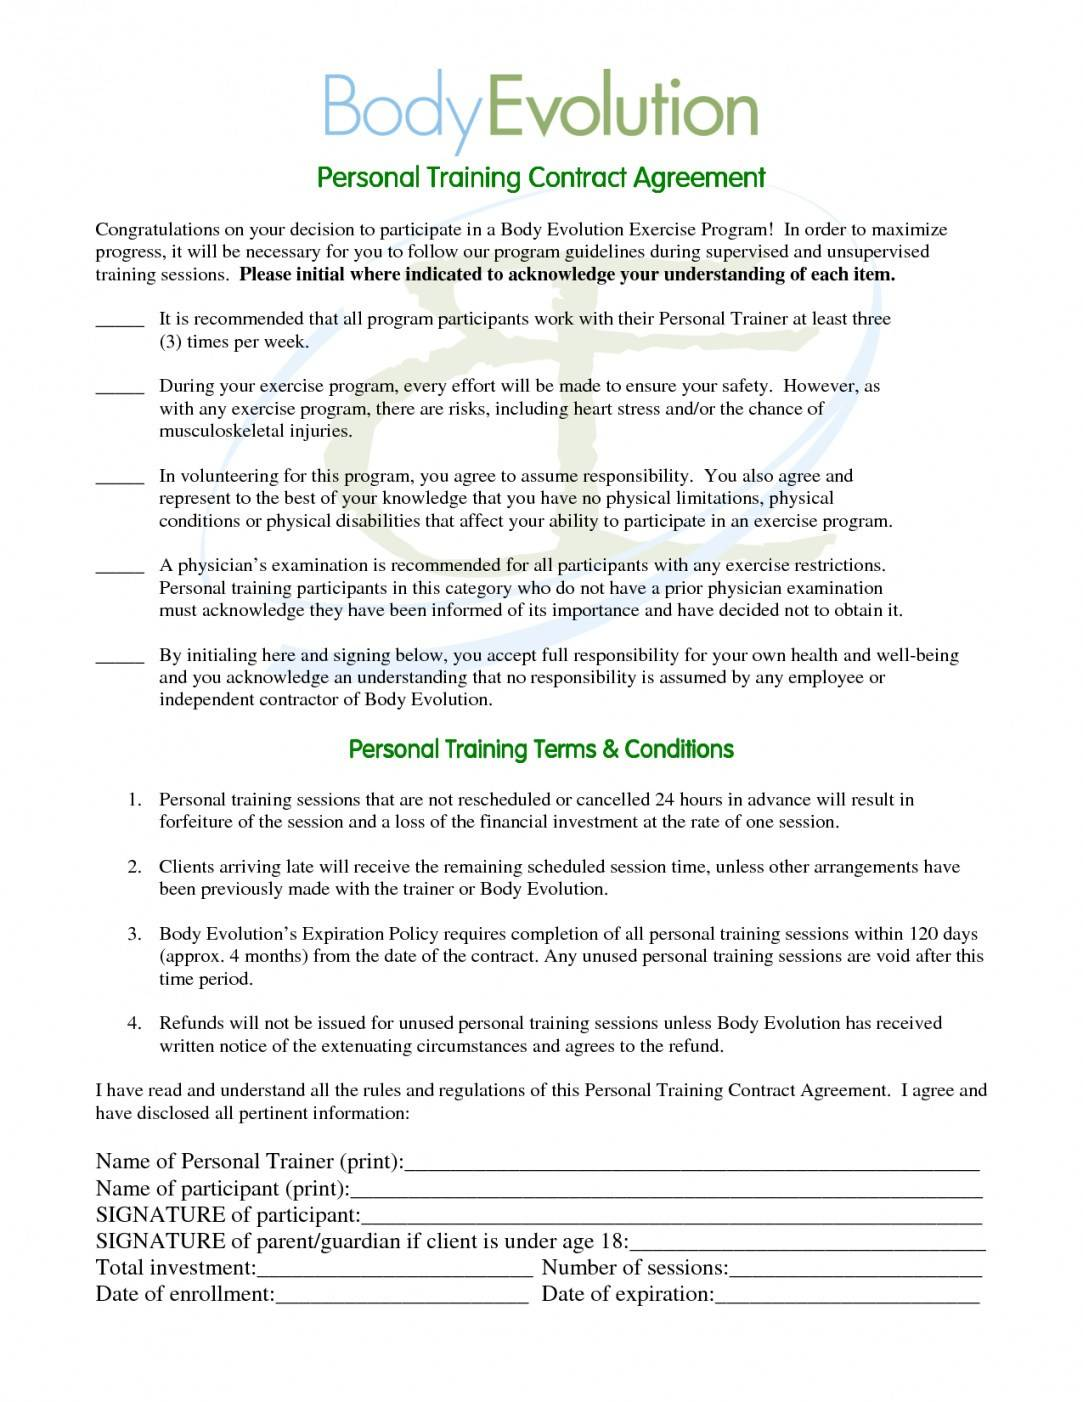 Sample Employee Training Contract Agreement